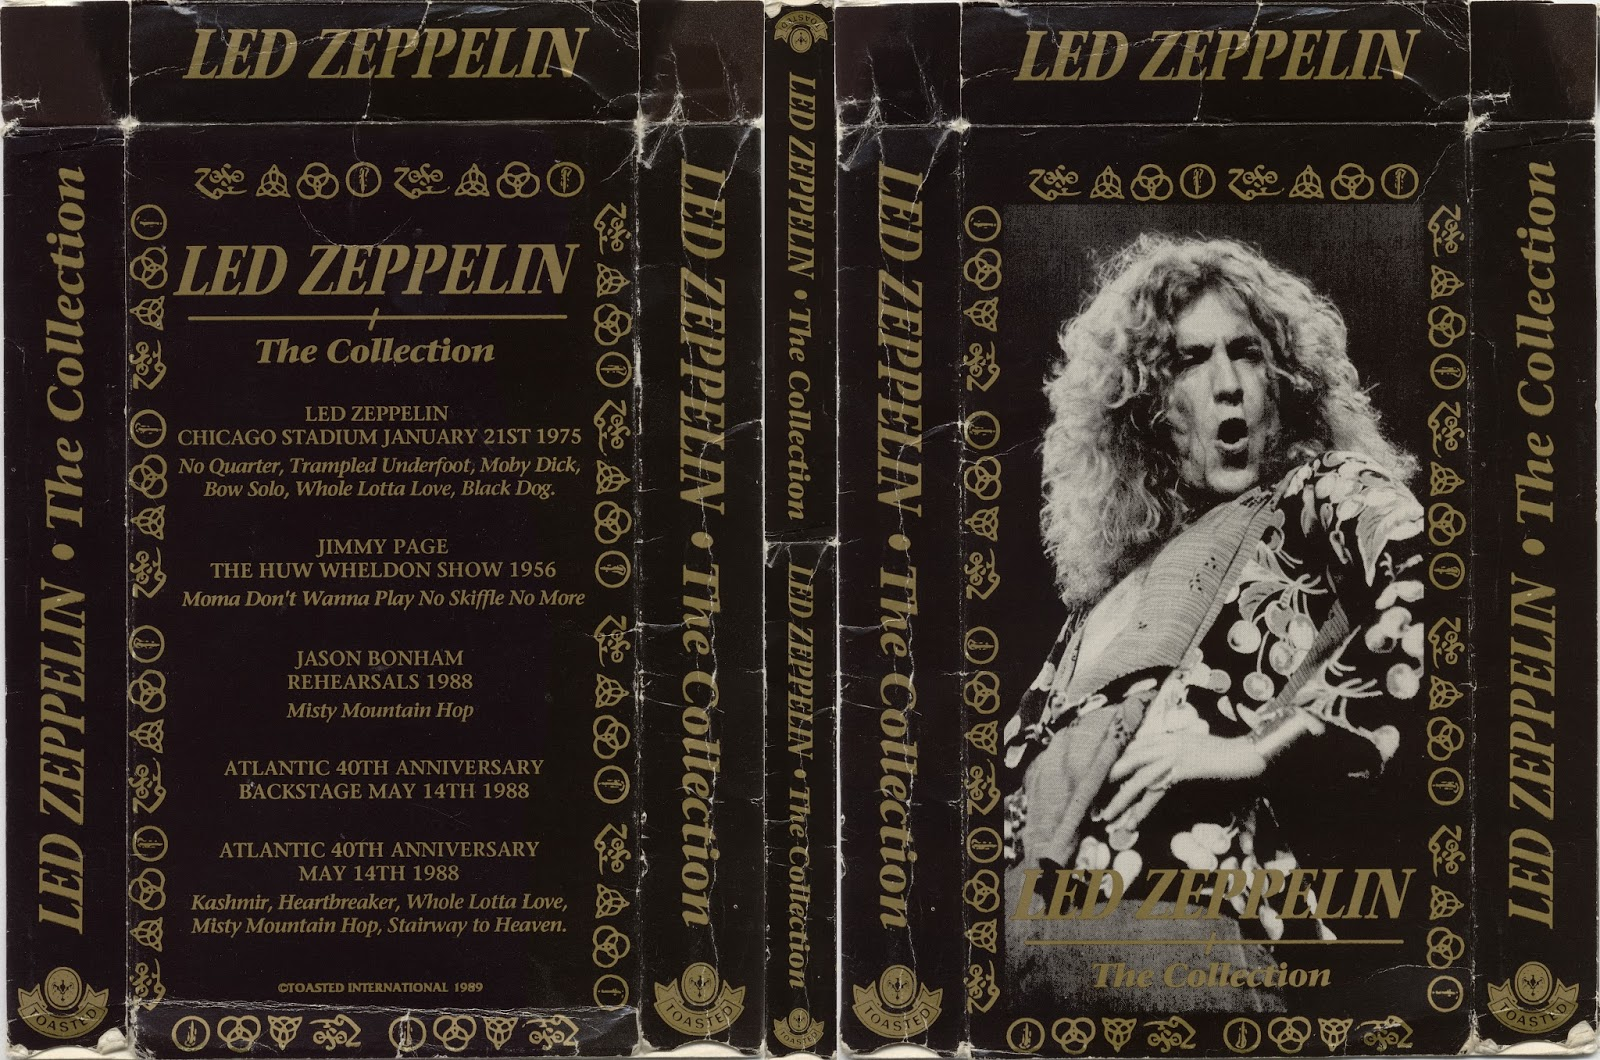 Long Live Led Zeppelin: Led Zeppelin The Collection Toasted Video